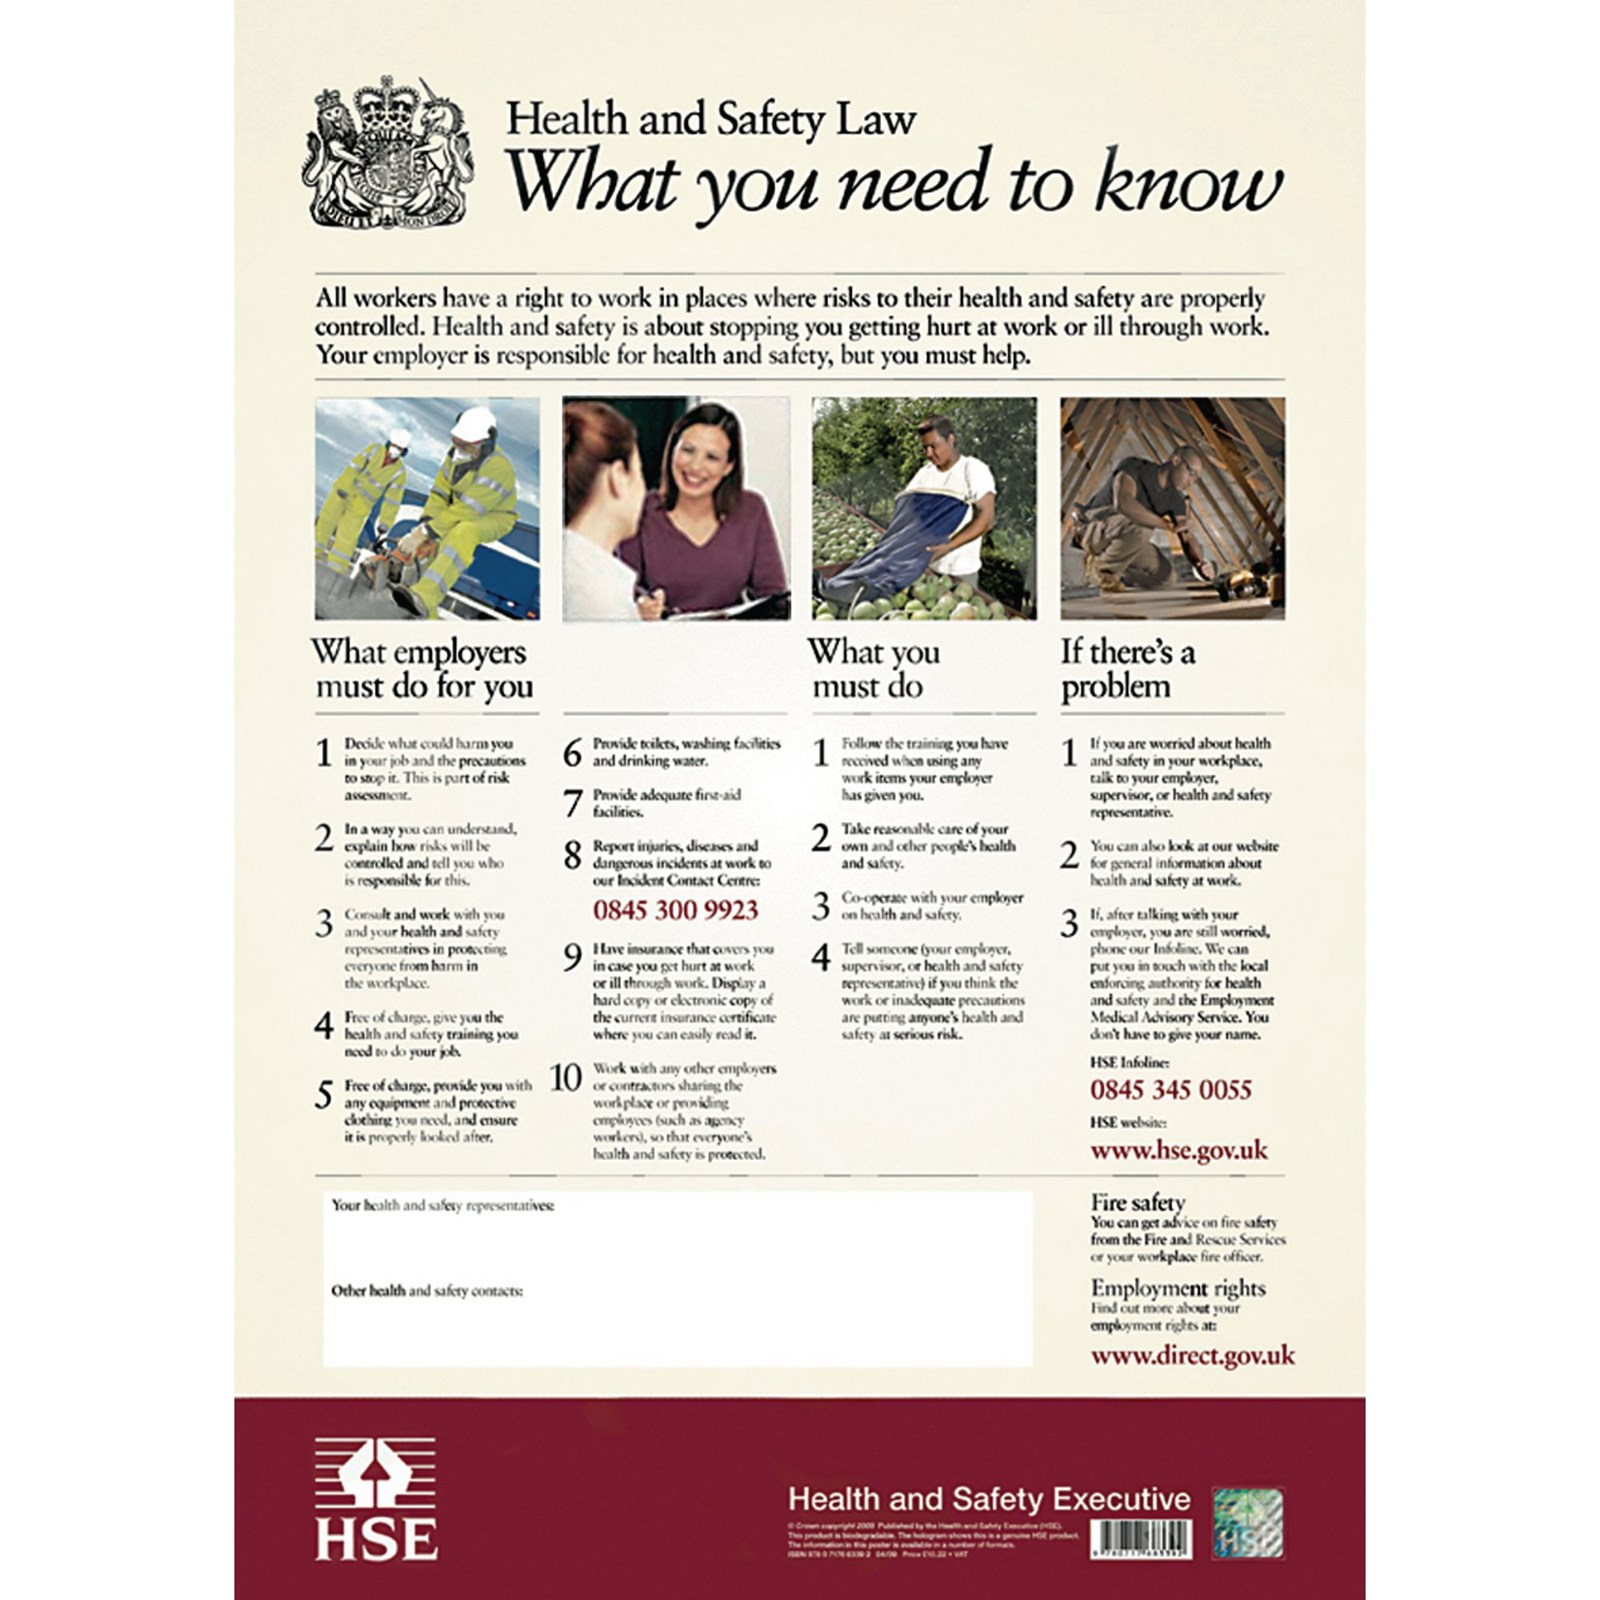 Health and Safety Law Poster - 595 x 415mm PVC